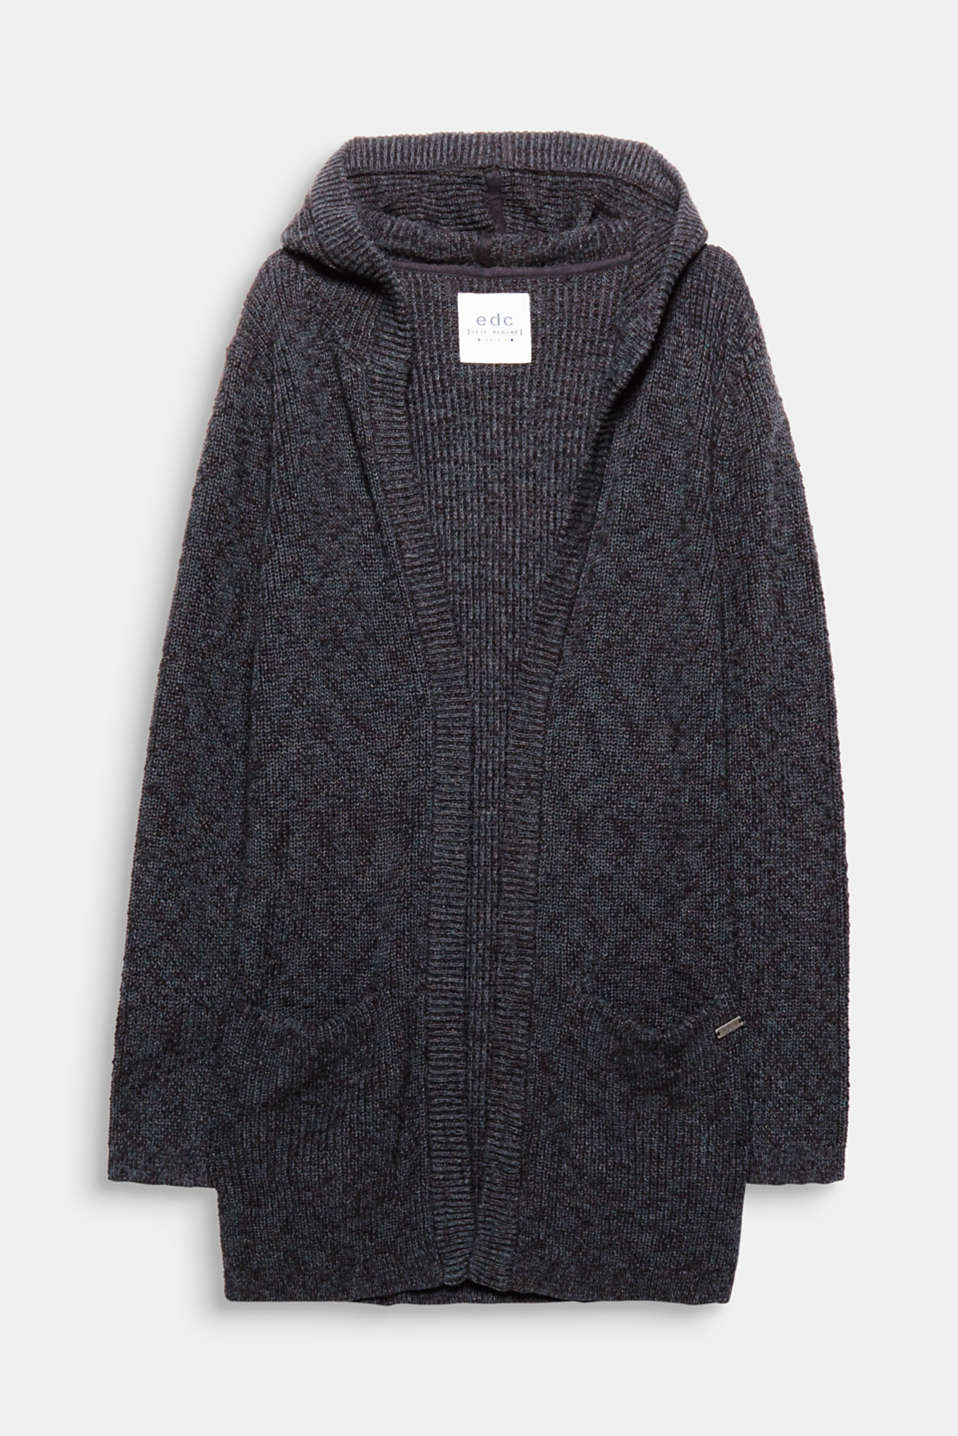 Casual fashion essential for your look: open cardigan with a hood, in rib knit yarn